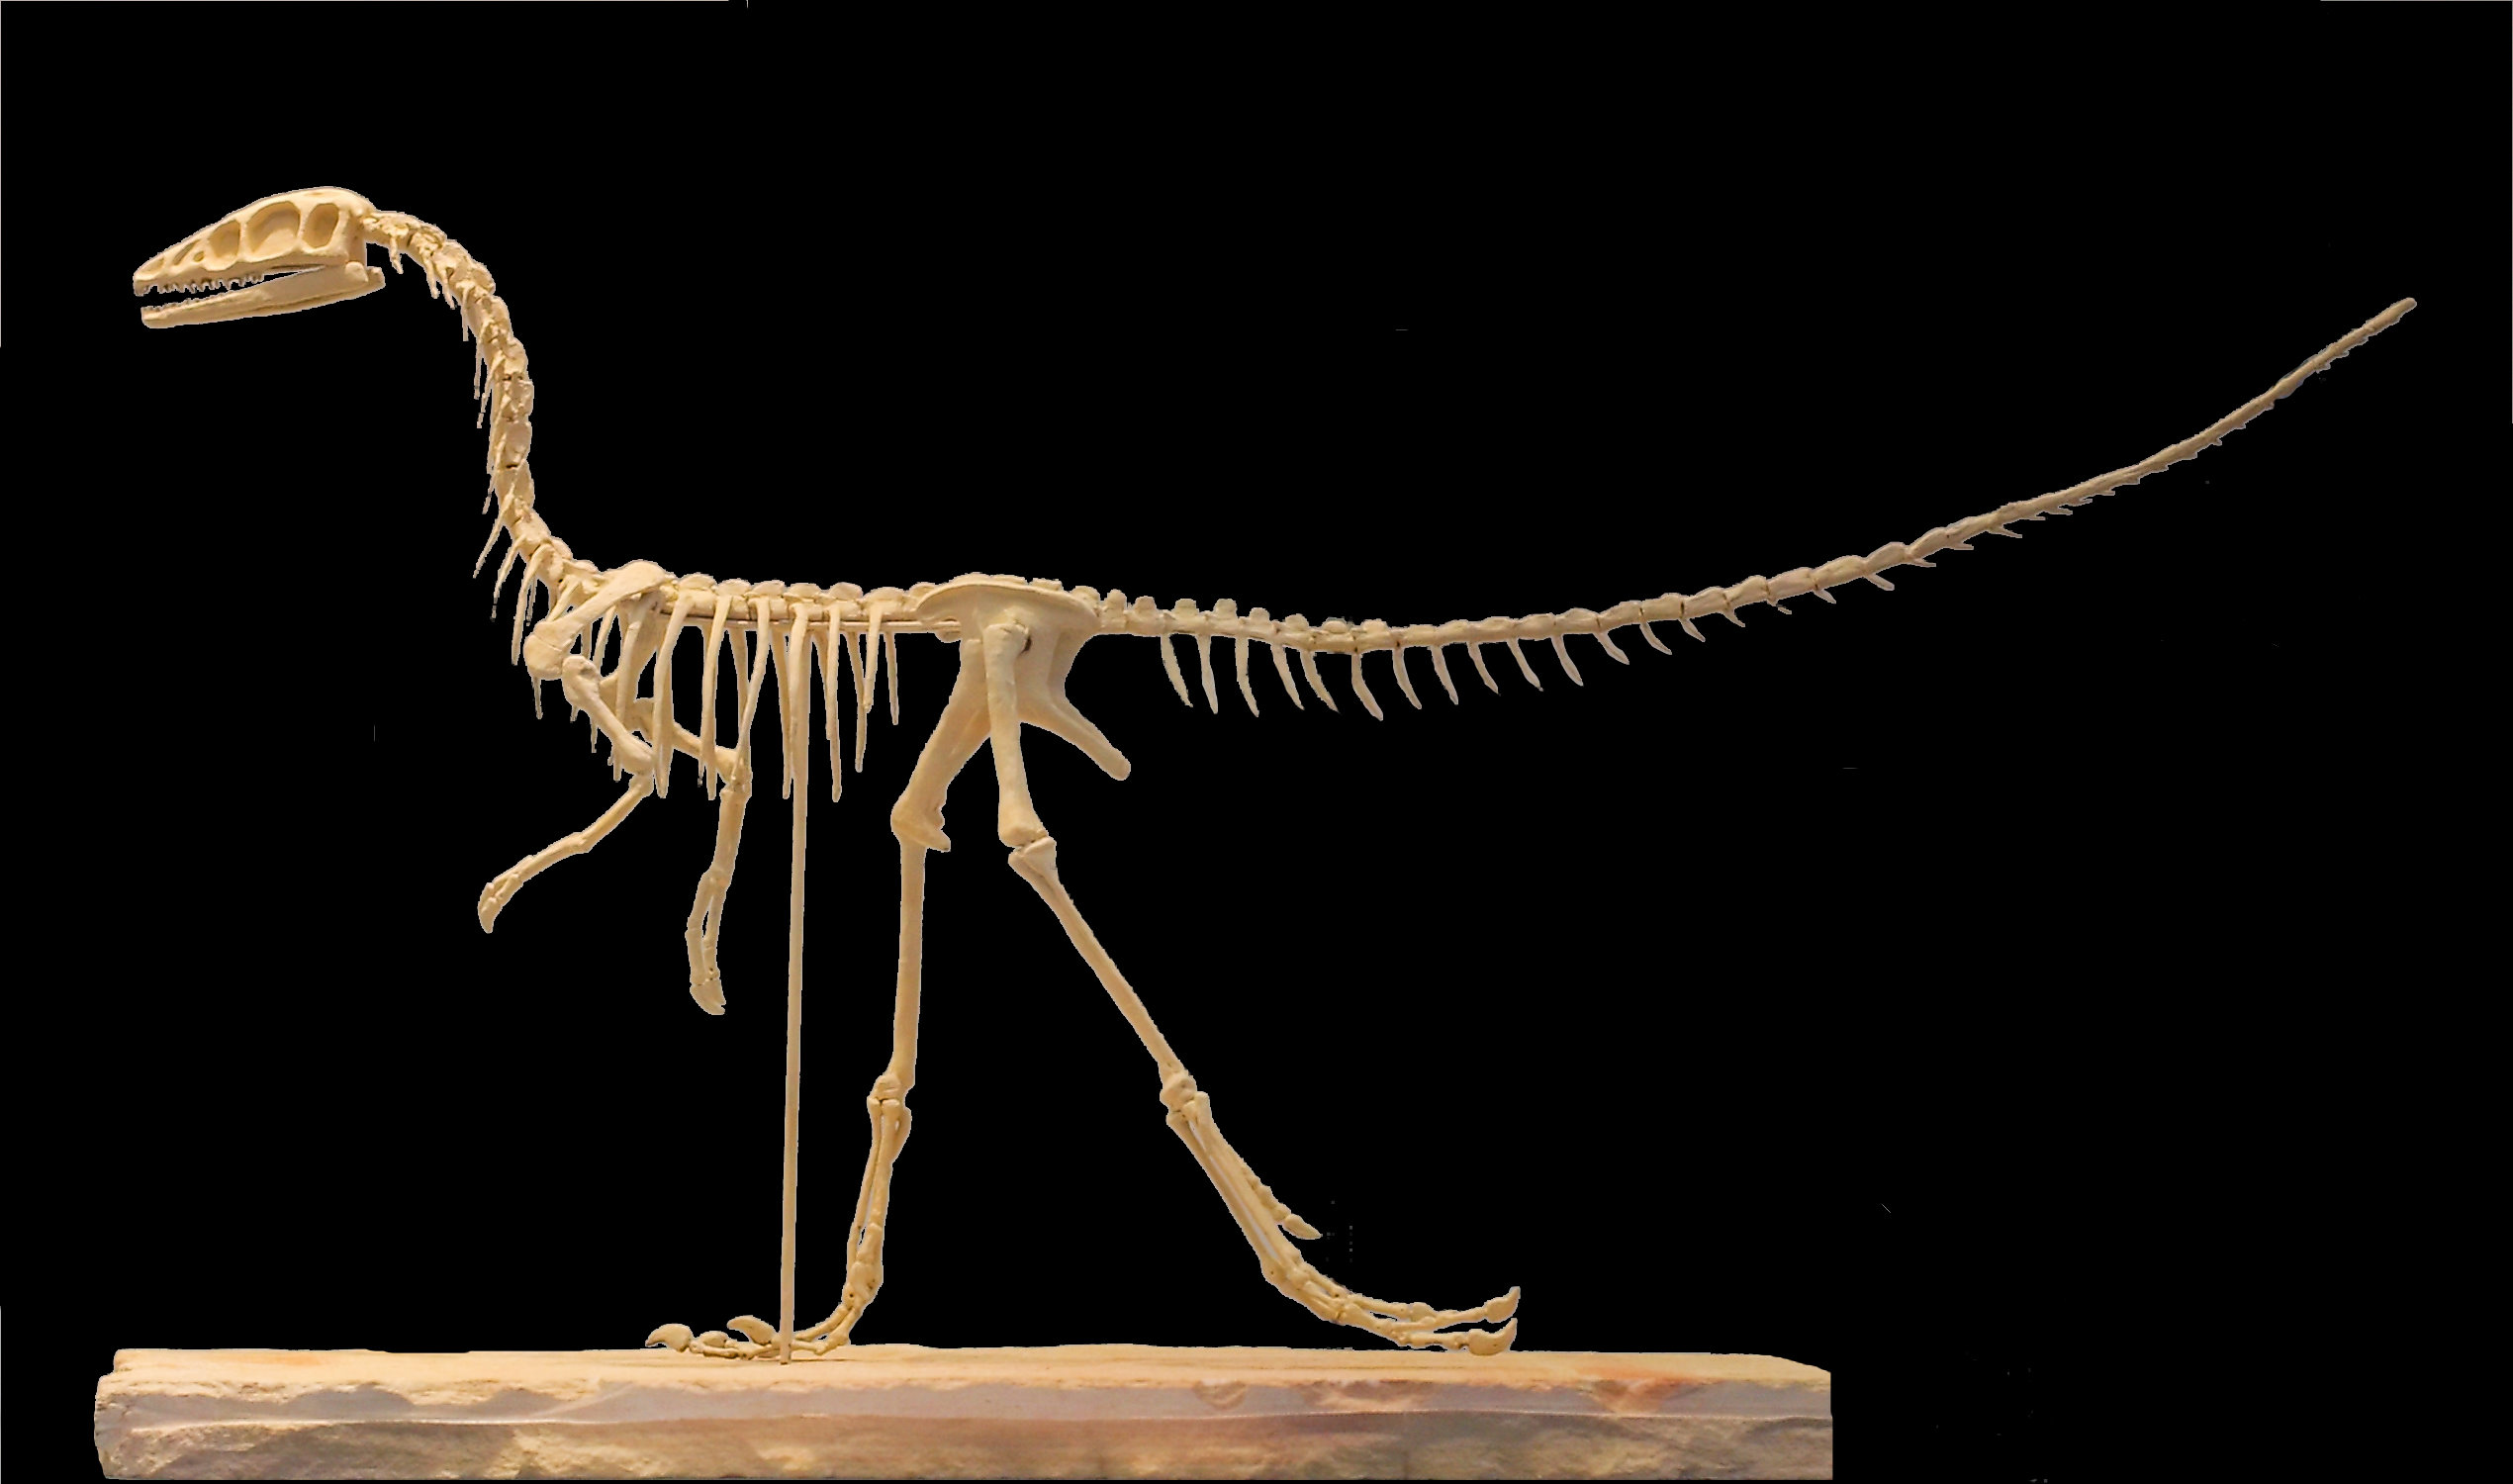 http://upload.wikimedia.org/wikipedia/commons/c/cd/Compsognathus_longipes_skeleton_reconstruction_munich.jpg